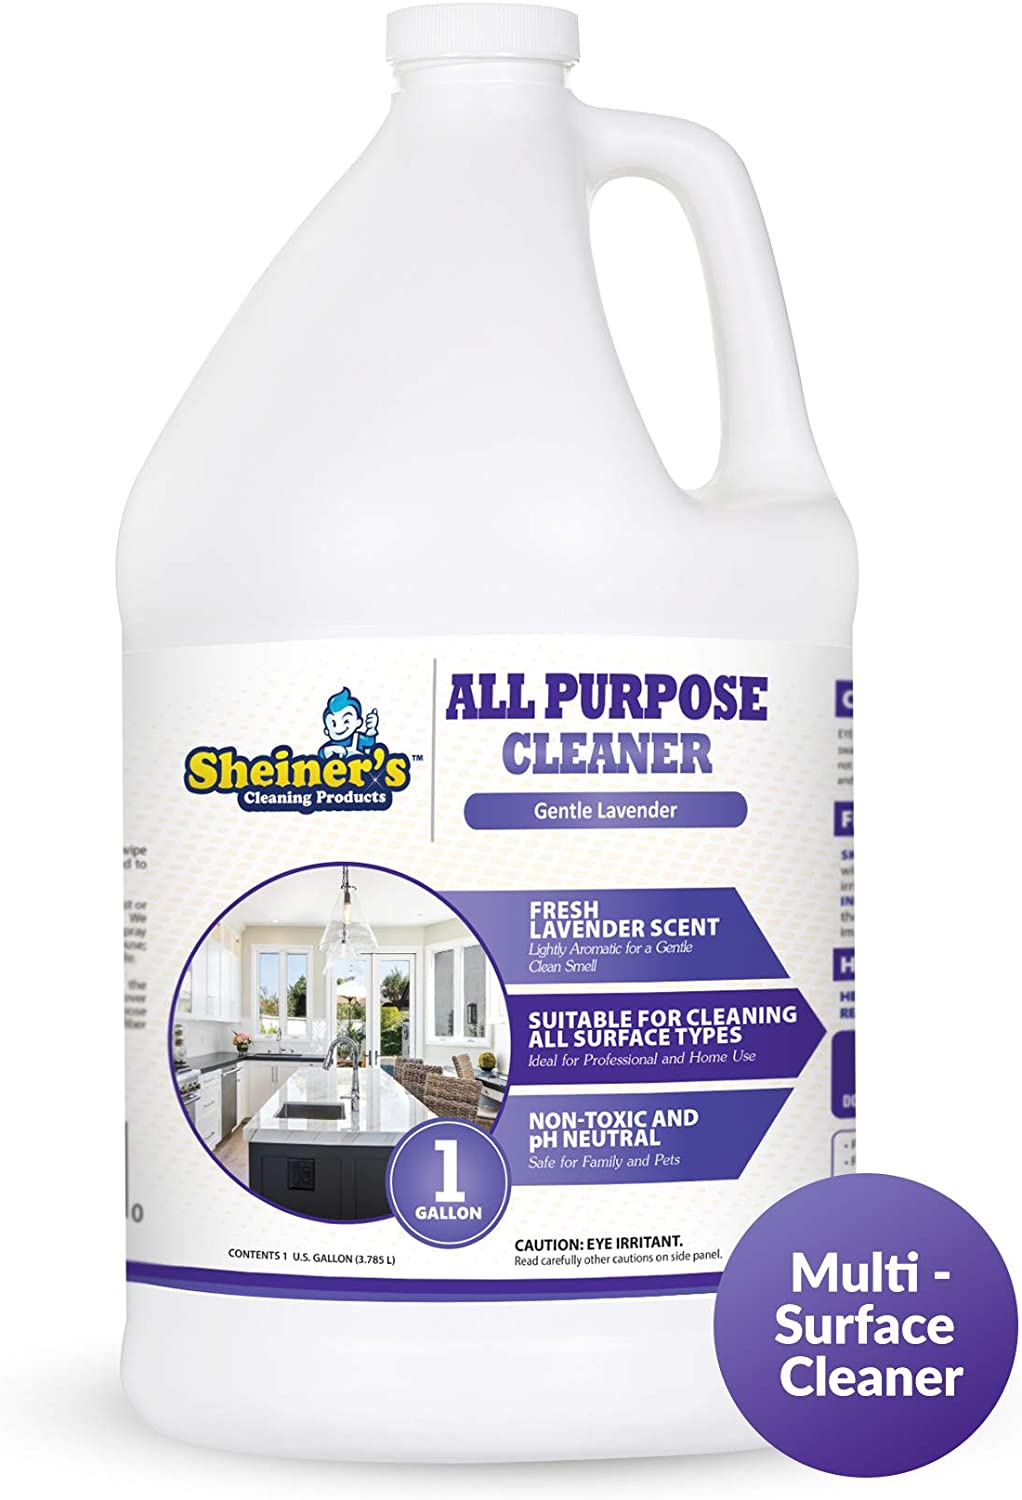 All Purpose Cleaner, Multi Surface Cleaner for Home, Kitchen Countertop,  Kitchen Floor, and Universal Stone Cleaning, Gentle Lavender Scent, 12  Gallon ...